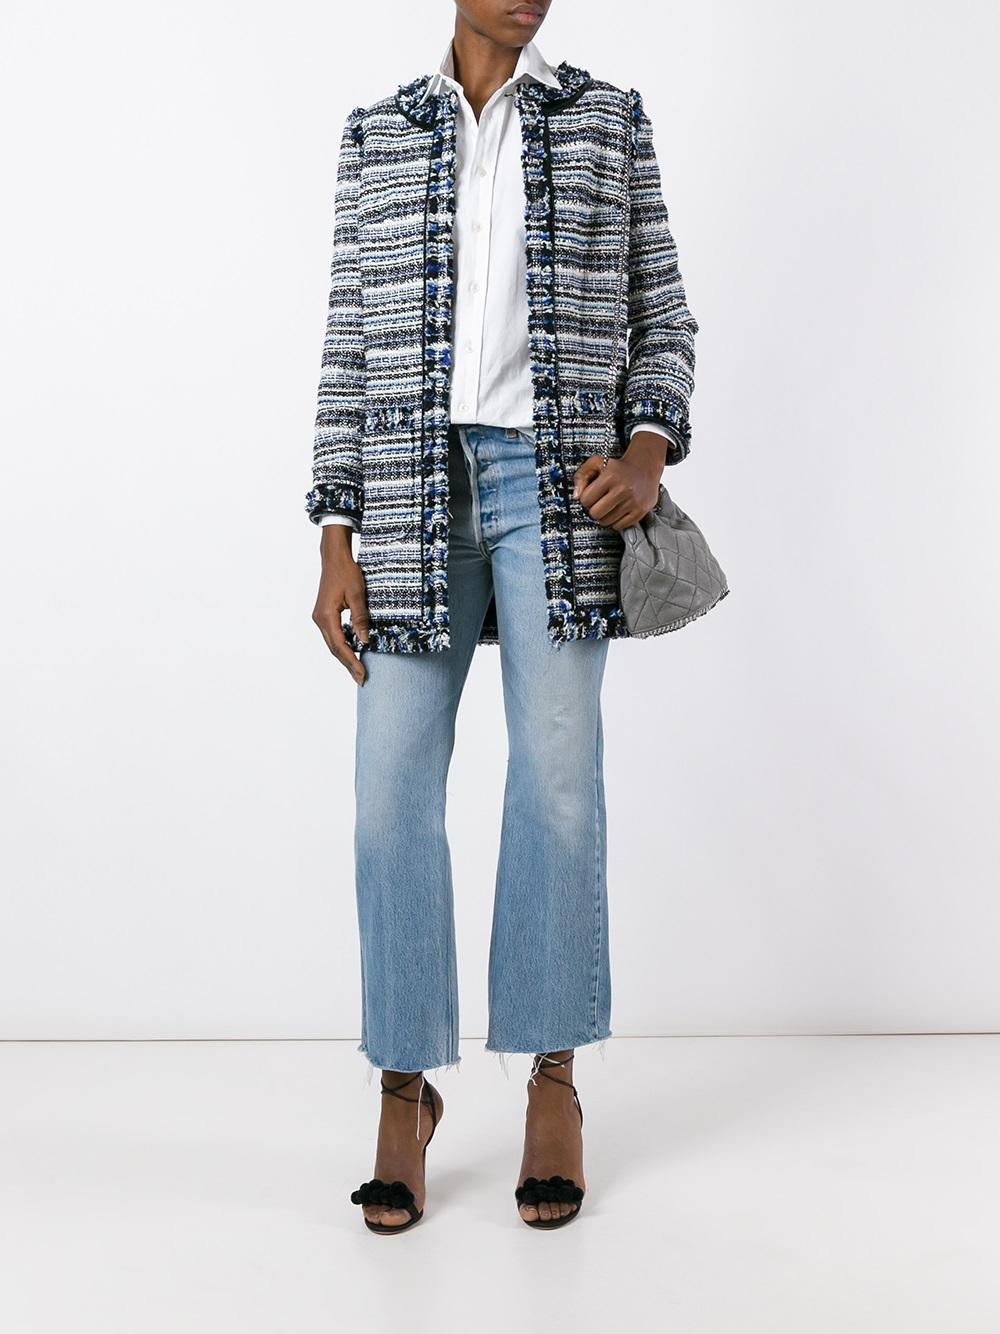 Lyst tory burch tweed coat in blue for Tory burch fashion island